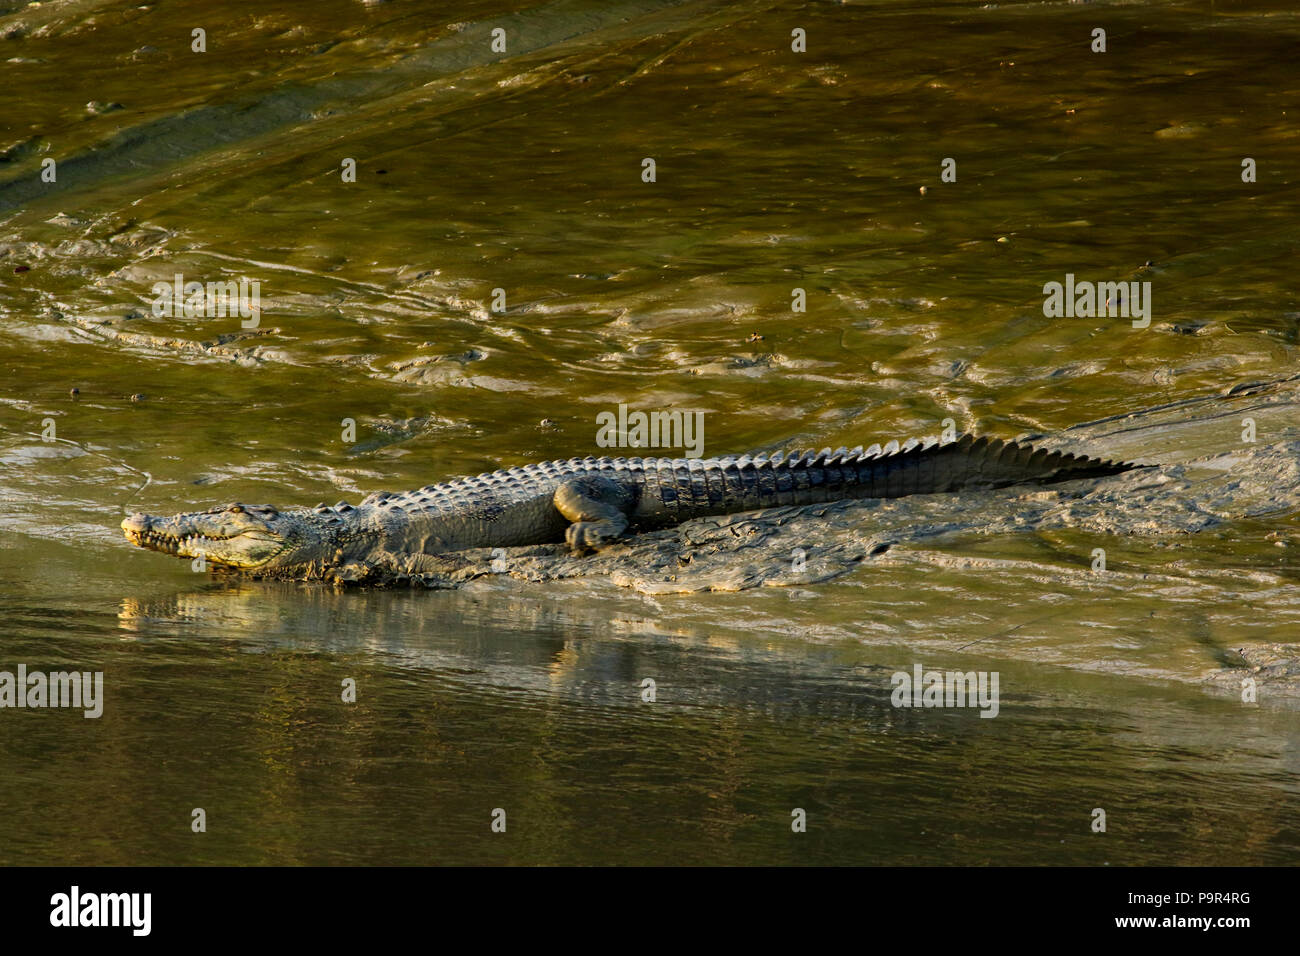 A salt-water crocodile at the Sundarbans, a UNESCO World Heritage Site and a wildlife sanctuary. Bagerhat, Bangladesh. - Stock Image